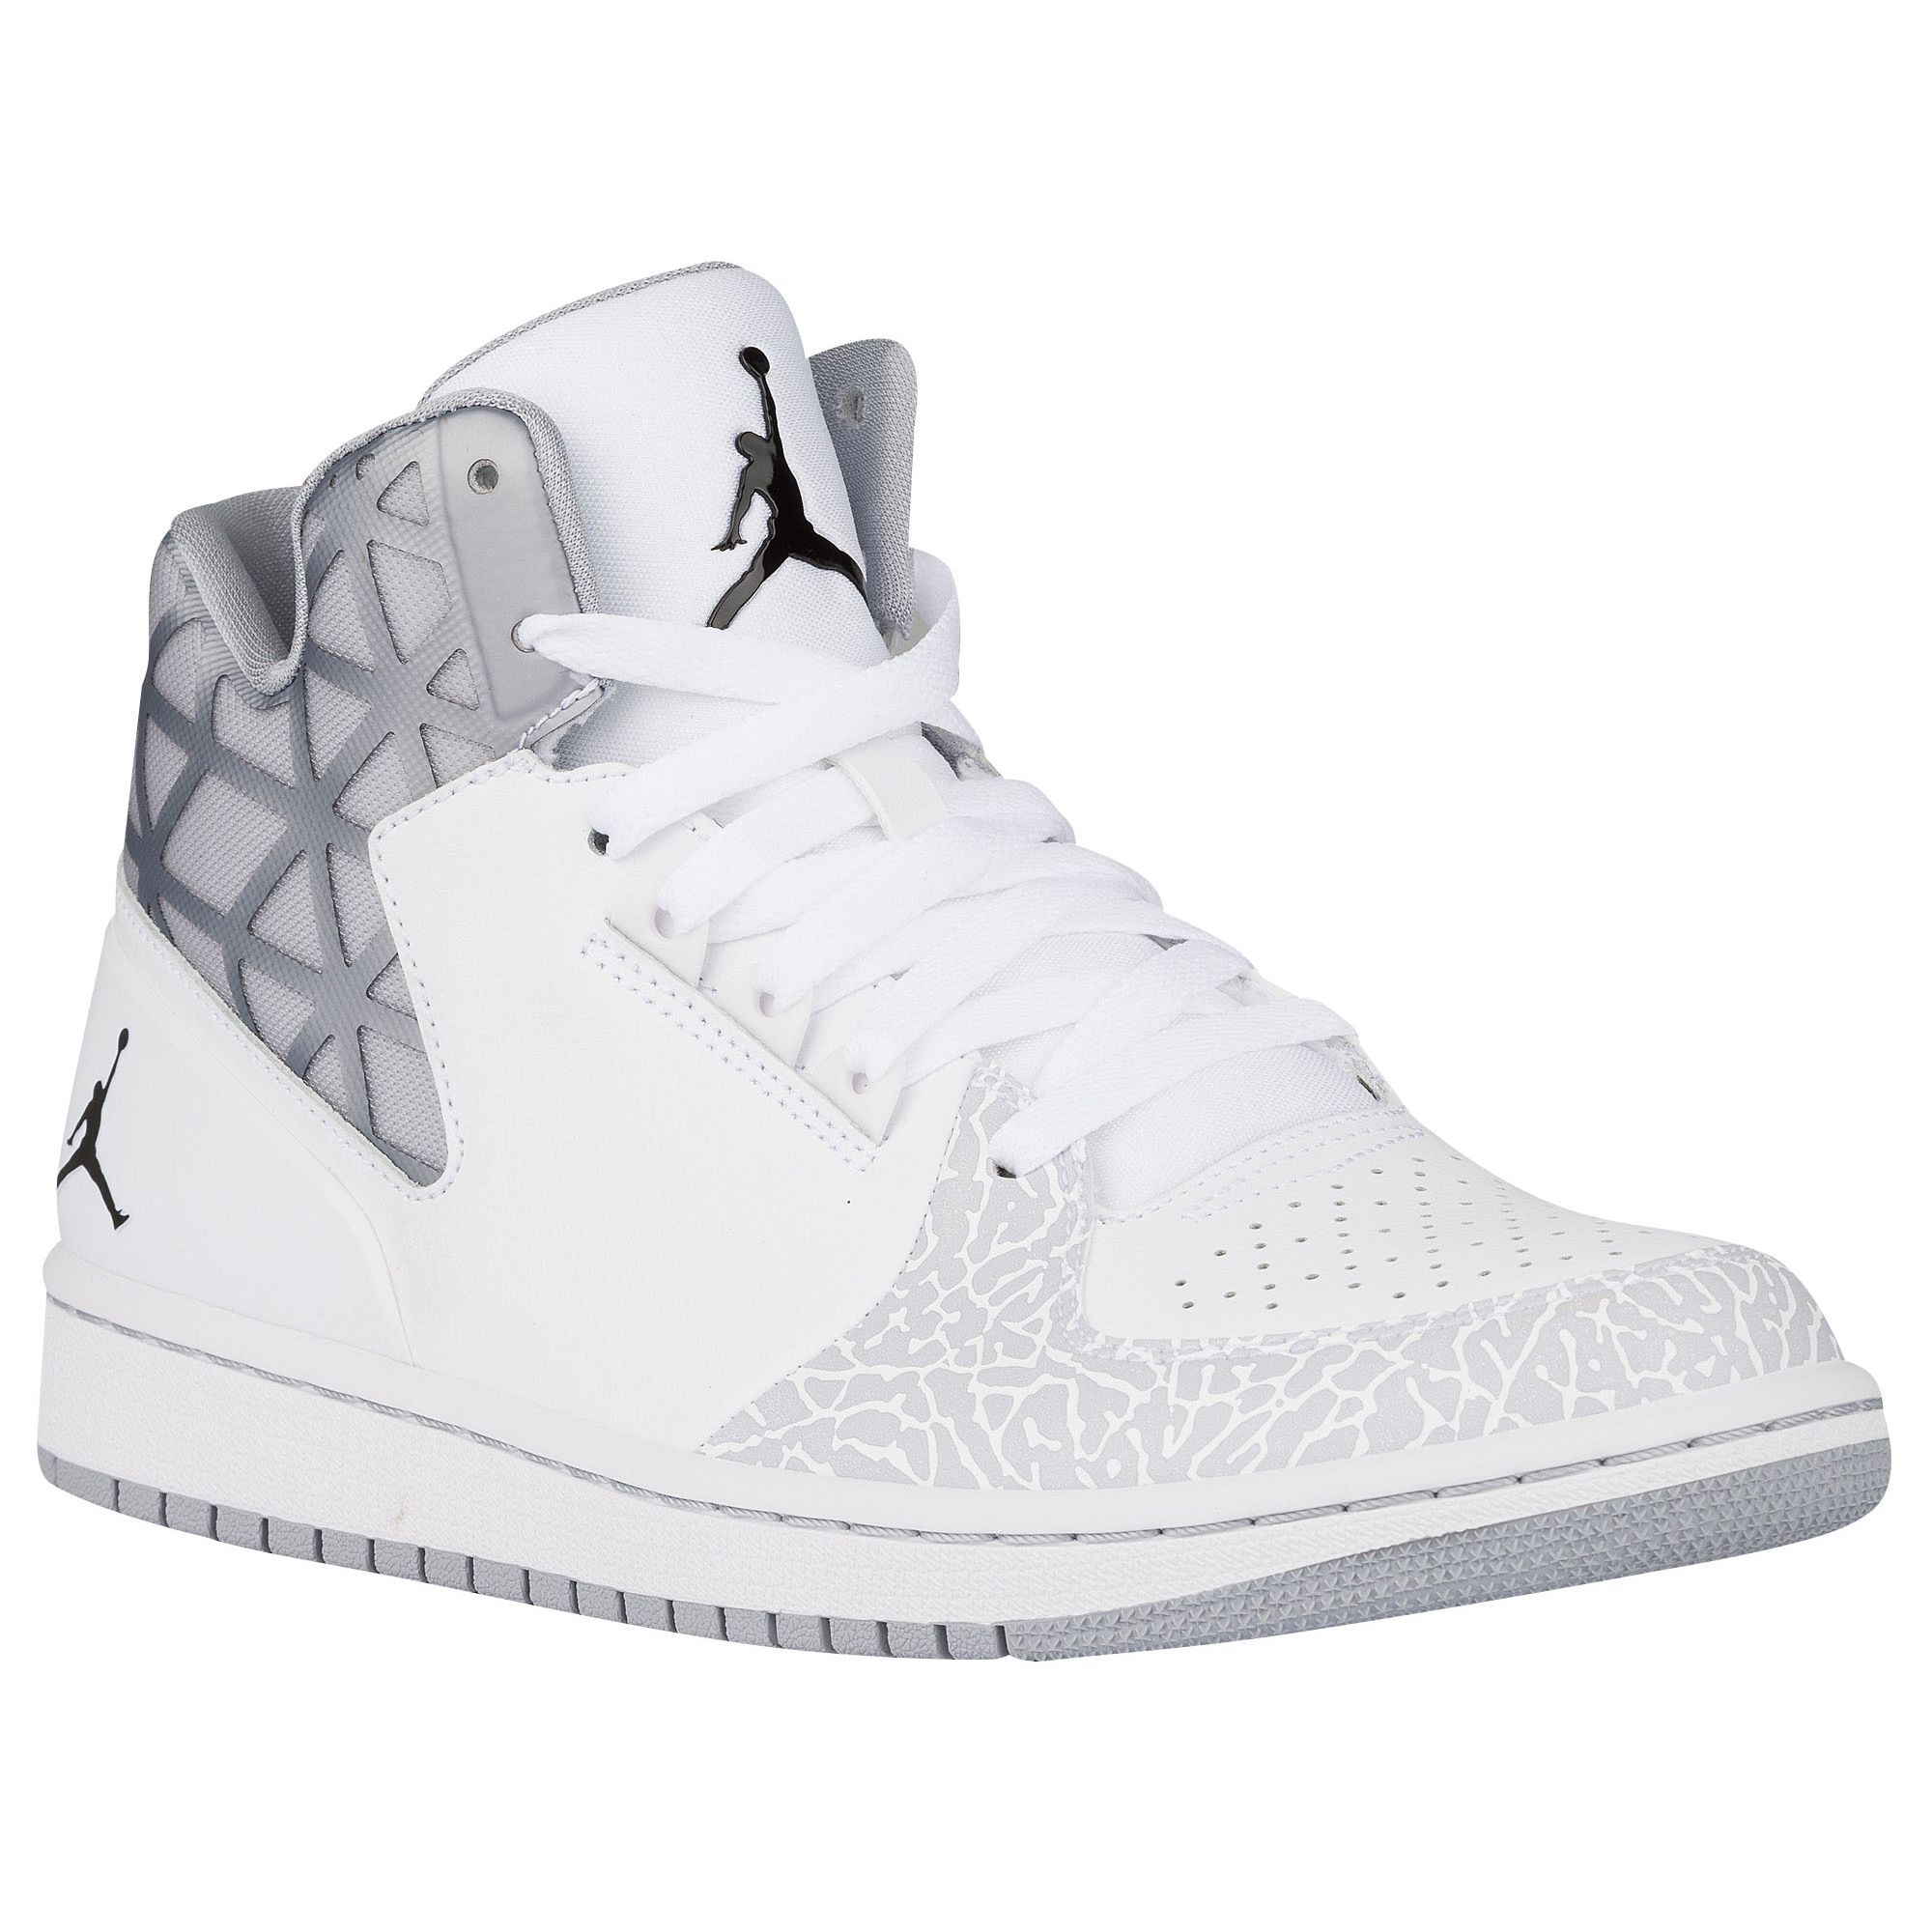 5b1625287ec3e4 Jordan 1 Flight 3 - Men s - Basketball - Shoes - White Cool Grey ...